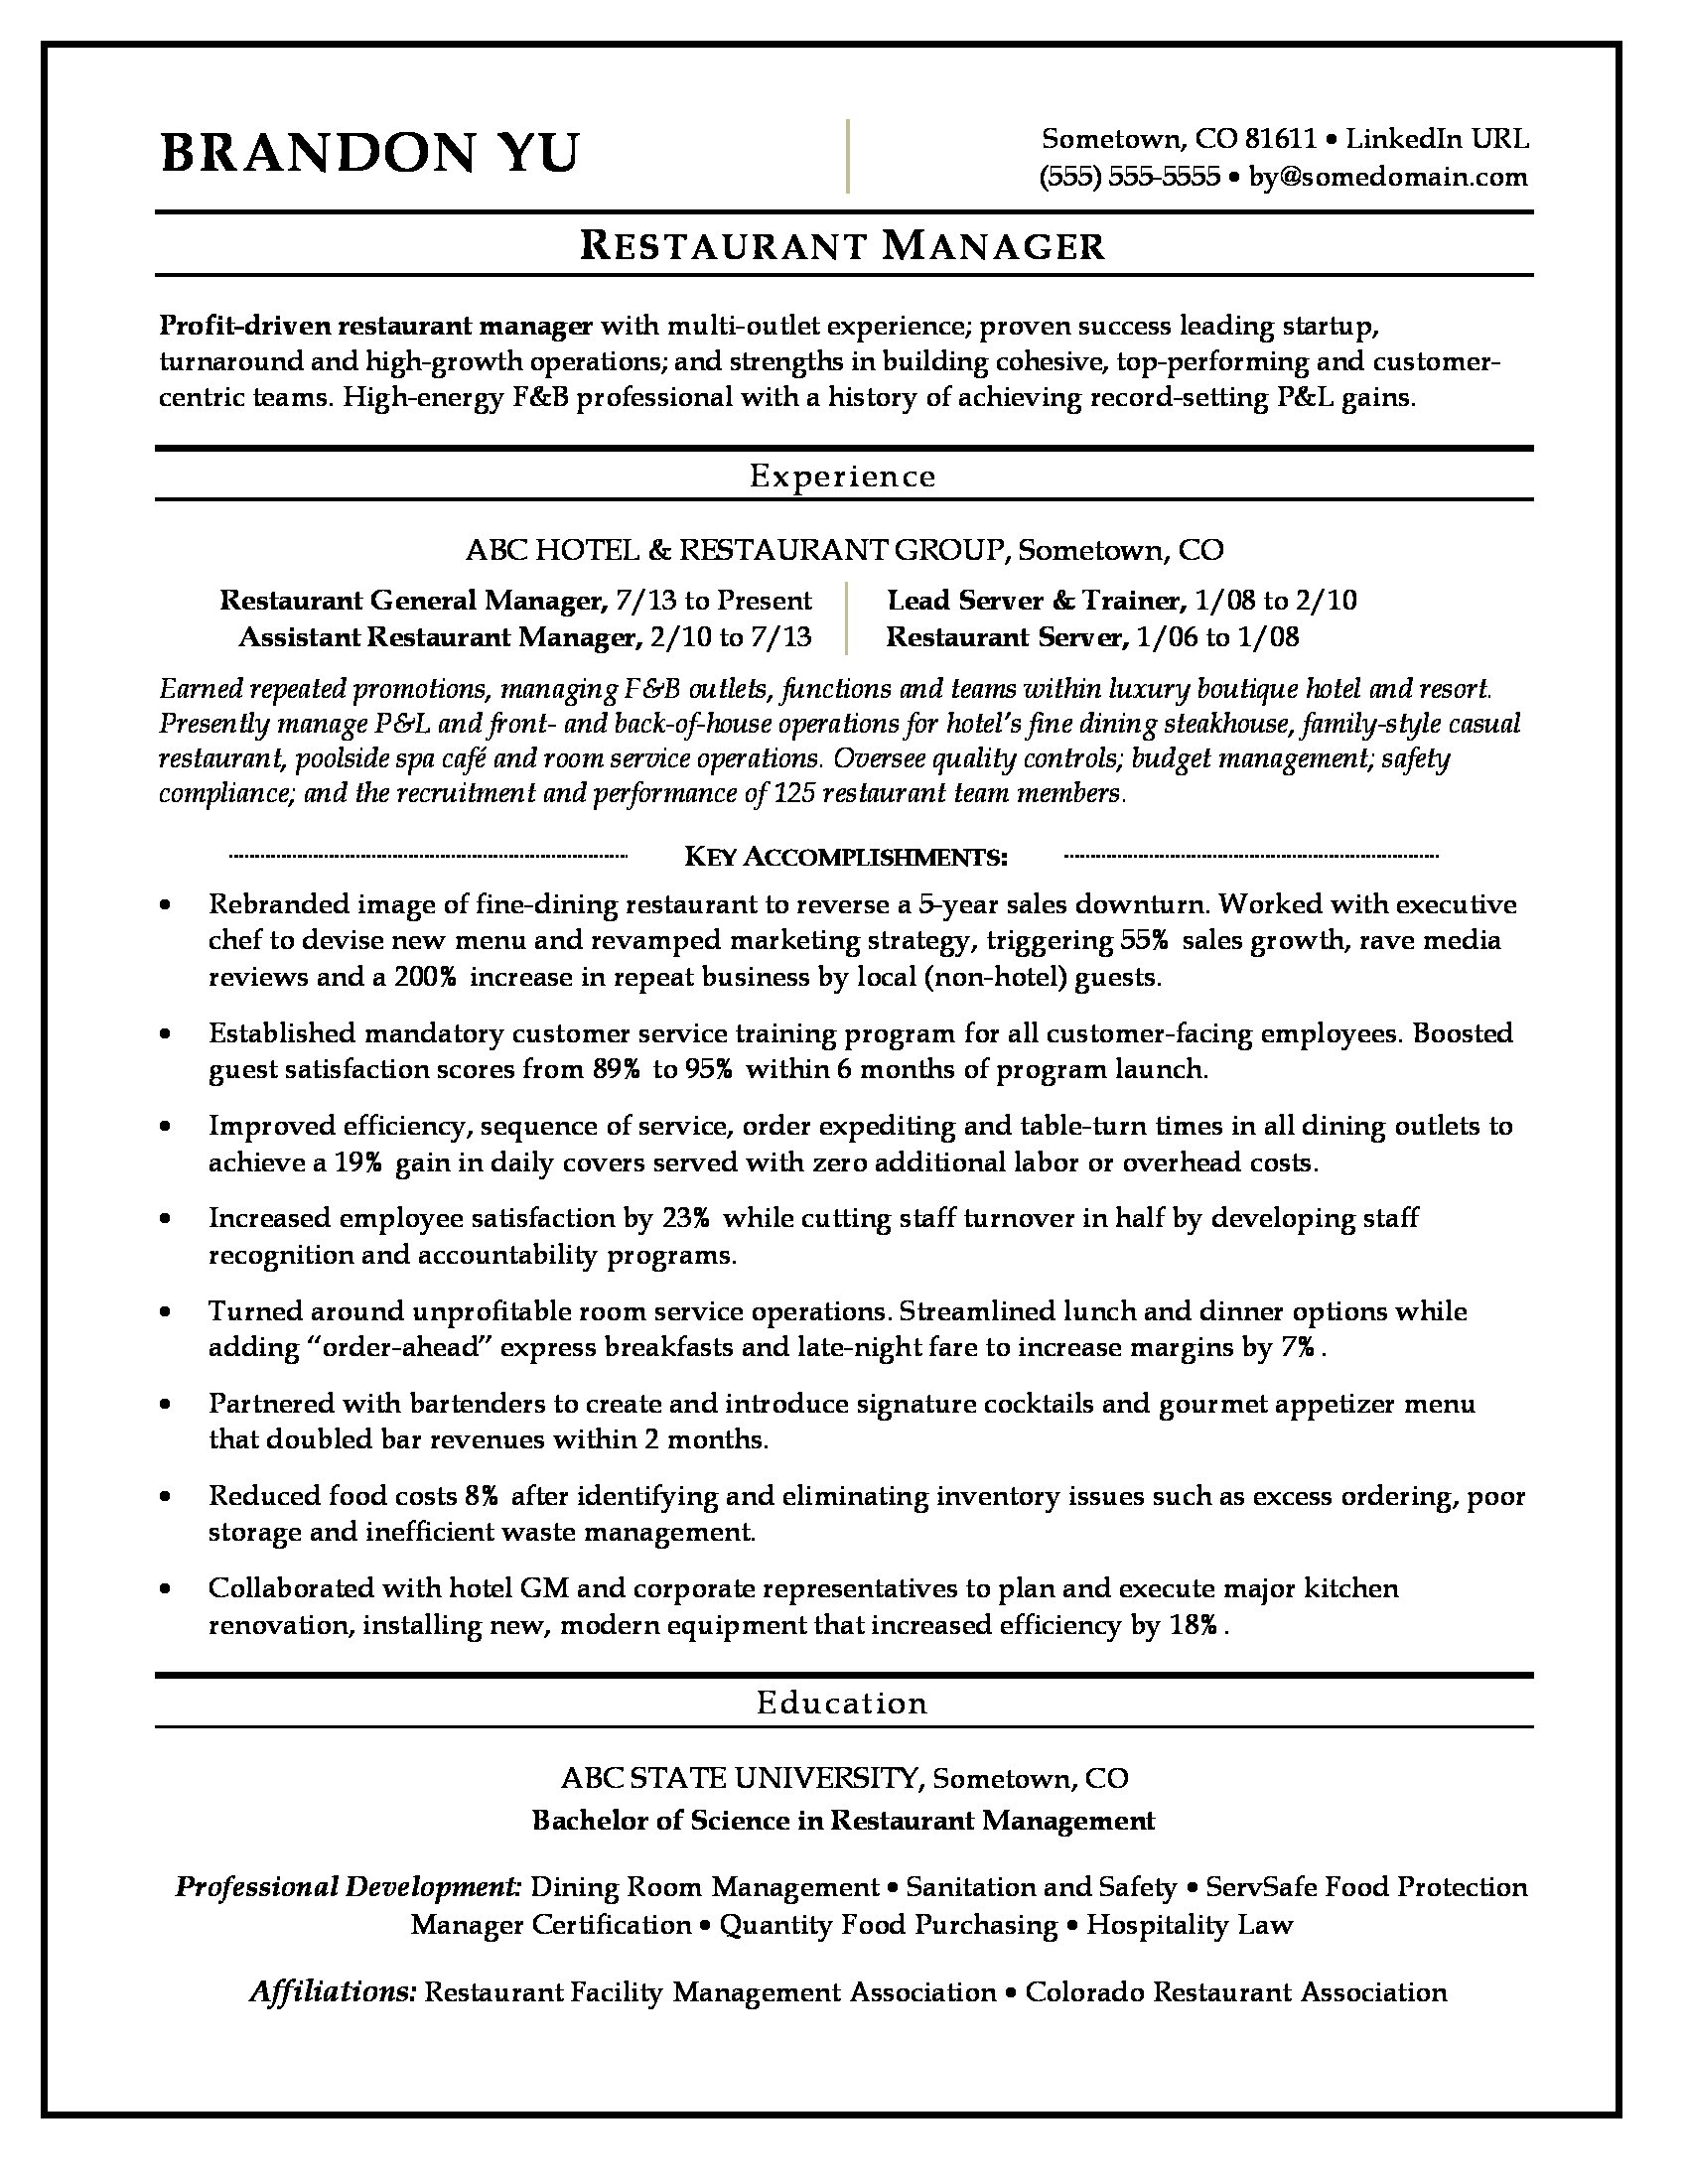 resume Management Resume restaurant manager resume sample monster com for a manager